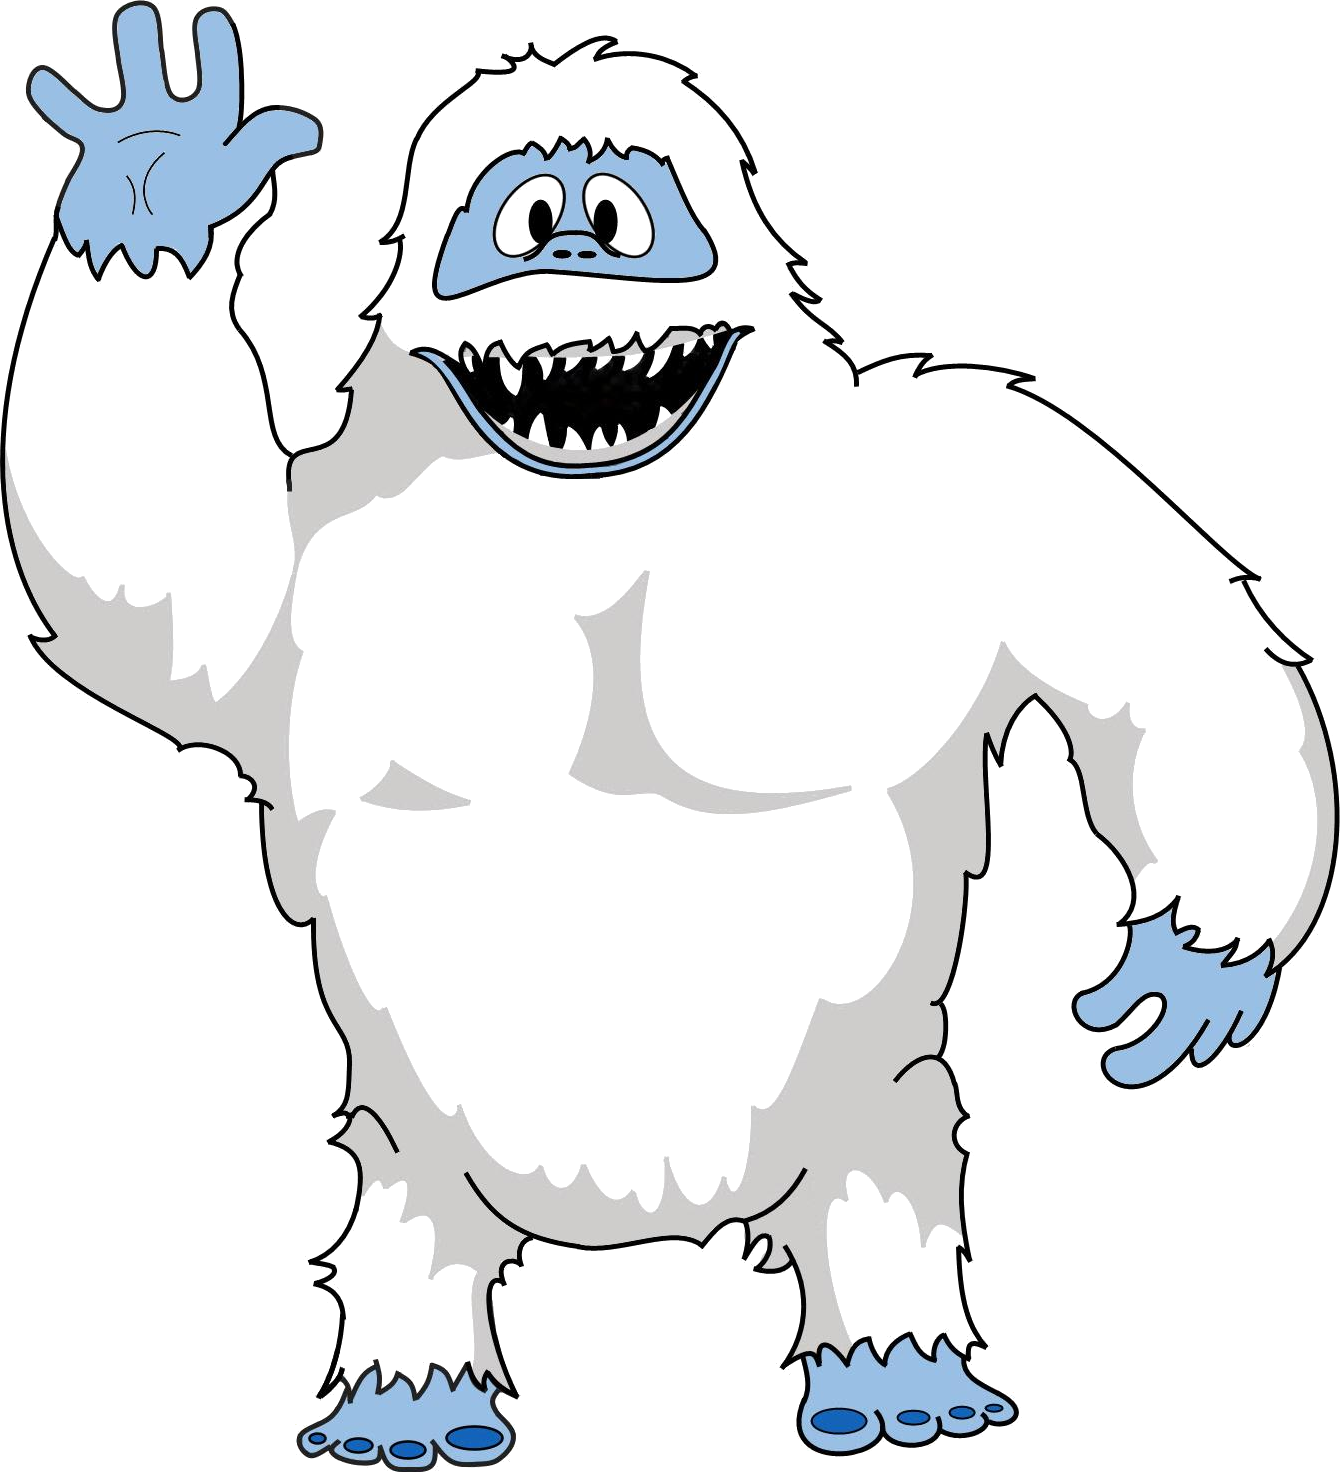 Yetis Transparent Abominable Snowman Png 1340x1472 Abominable Snowman Yeti Logo Snowman